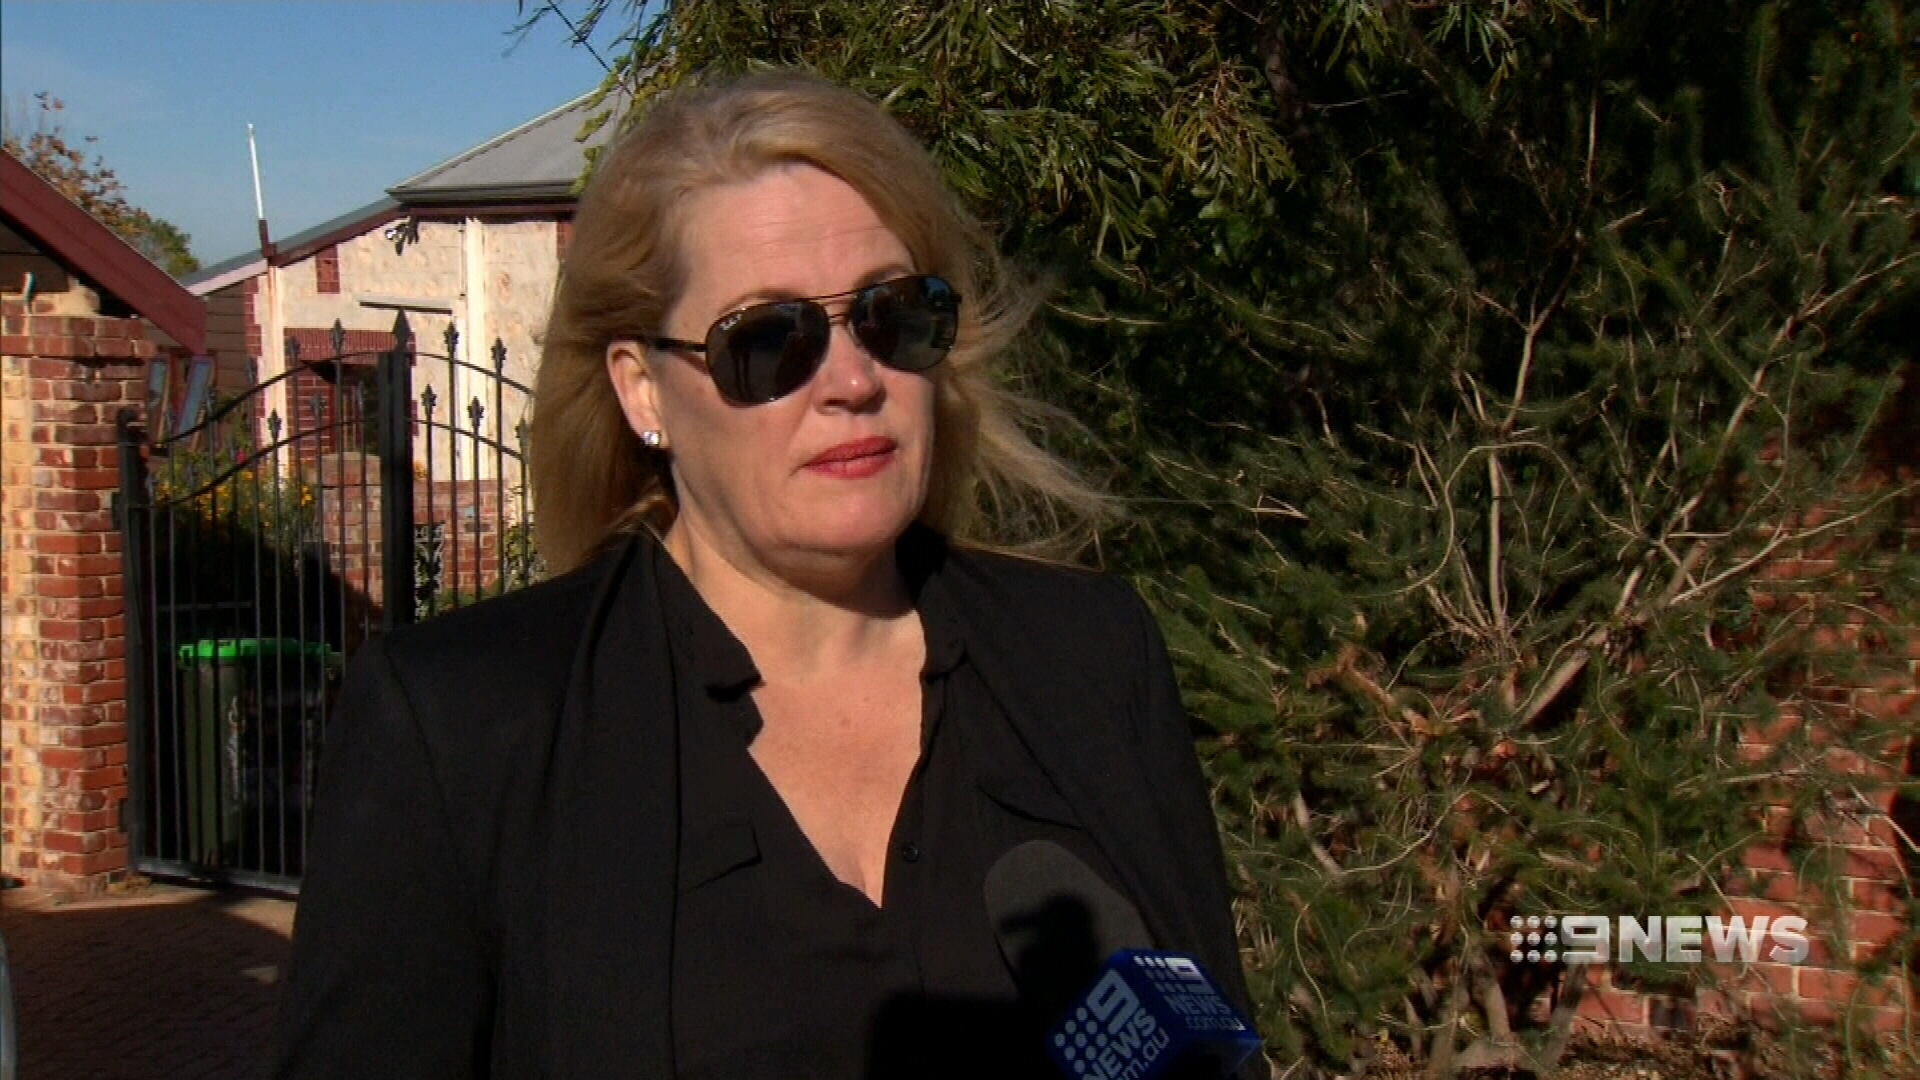 Colleen Yates denies she lied on CV